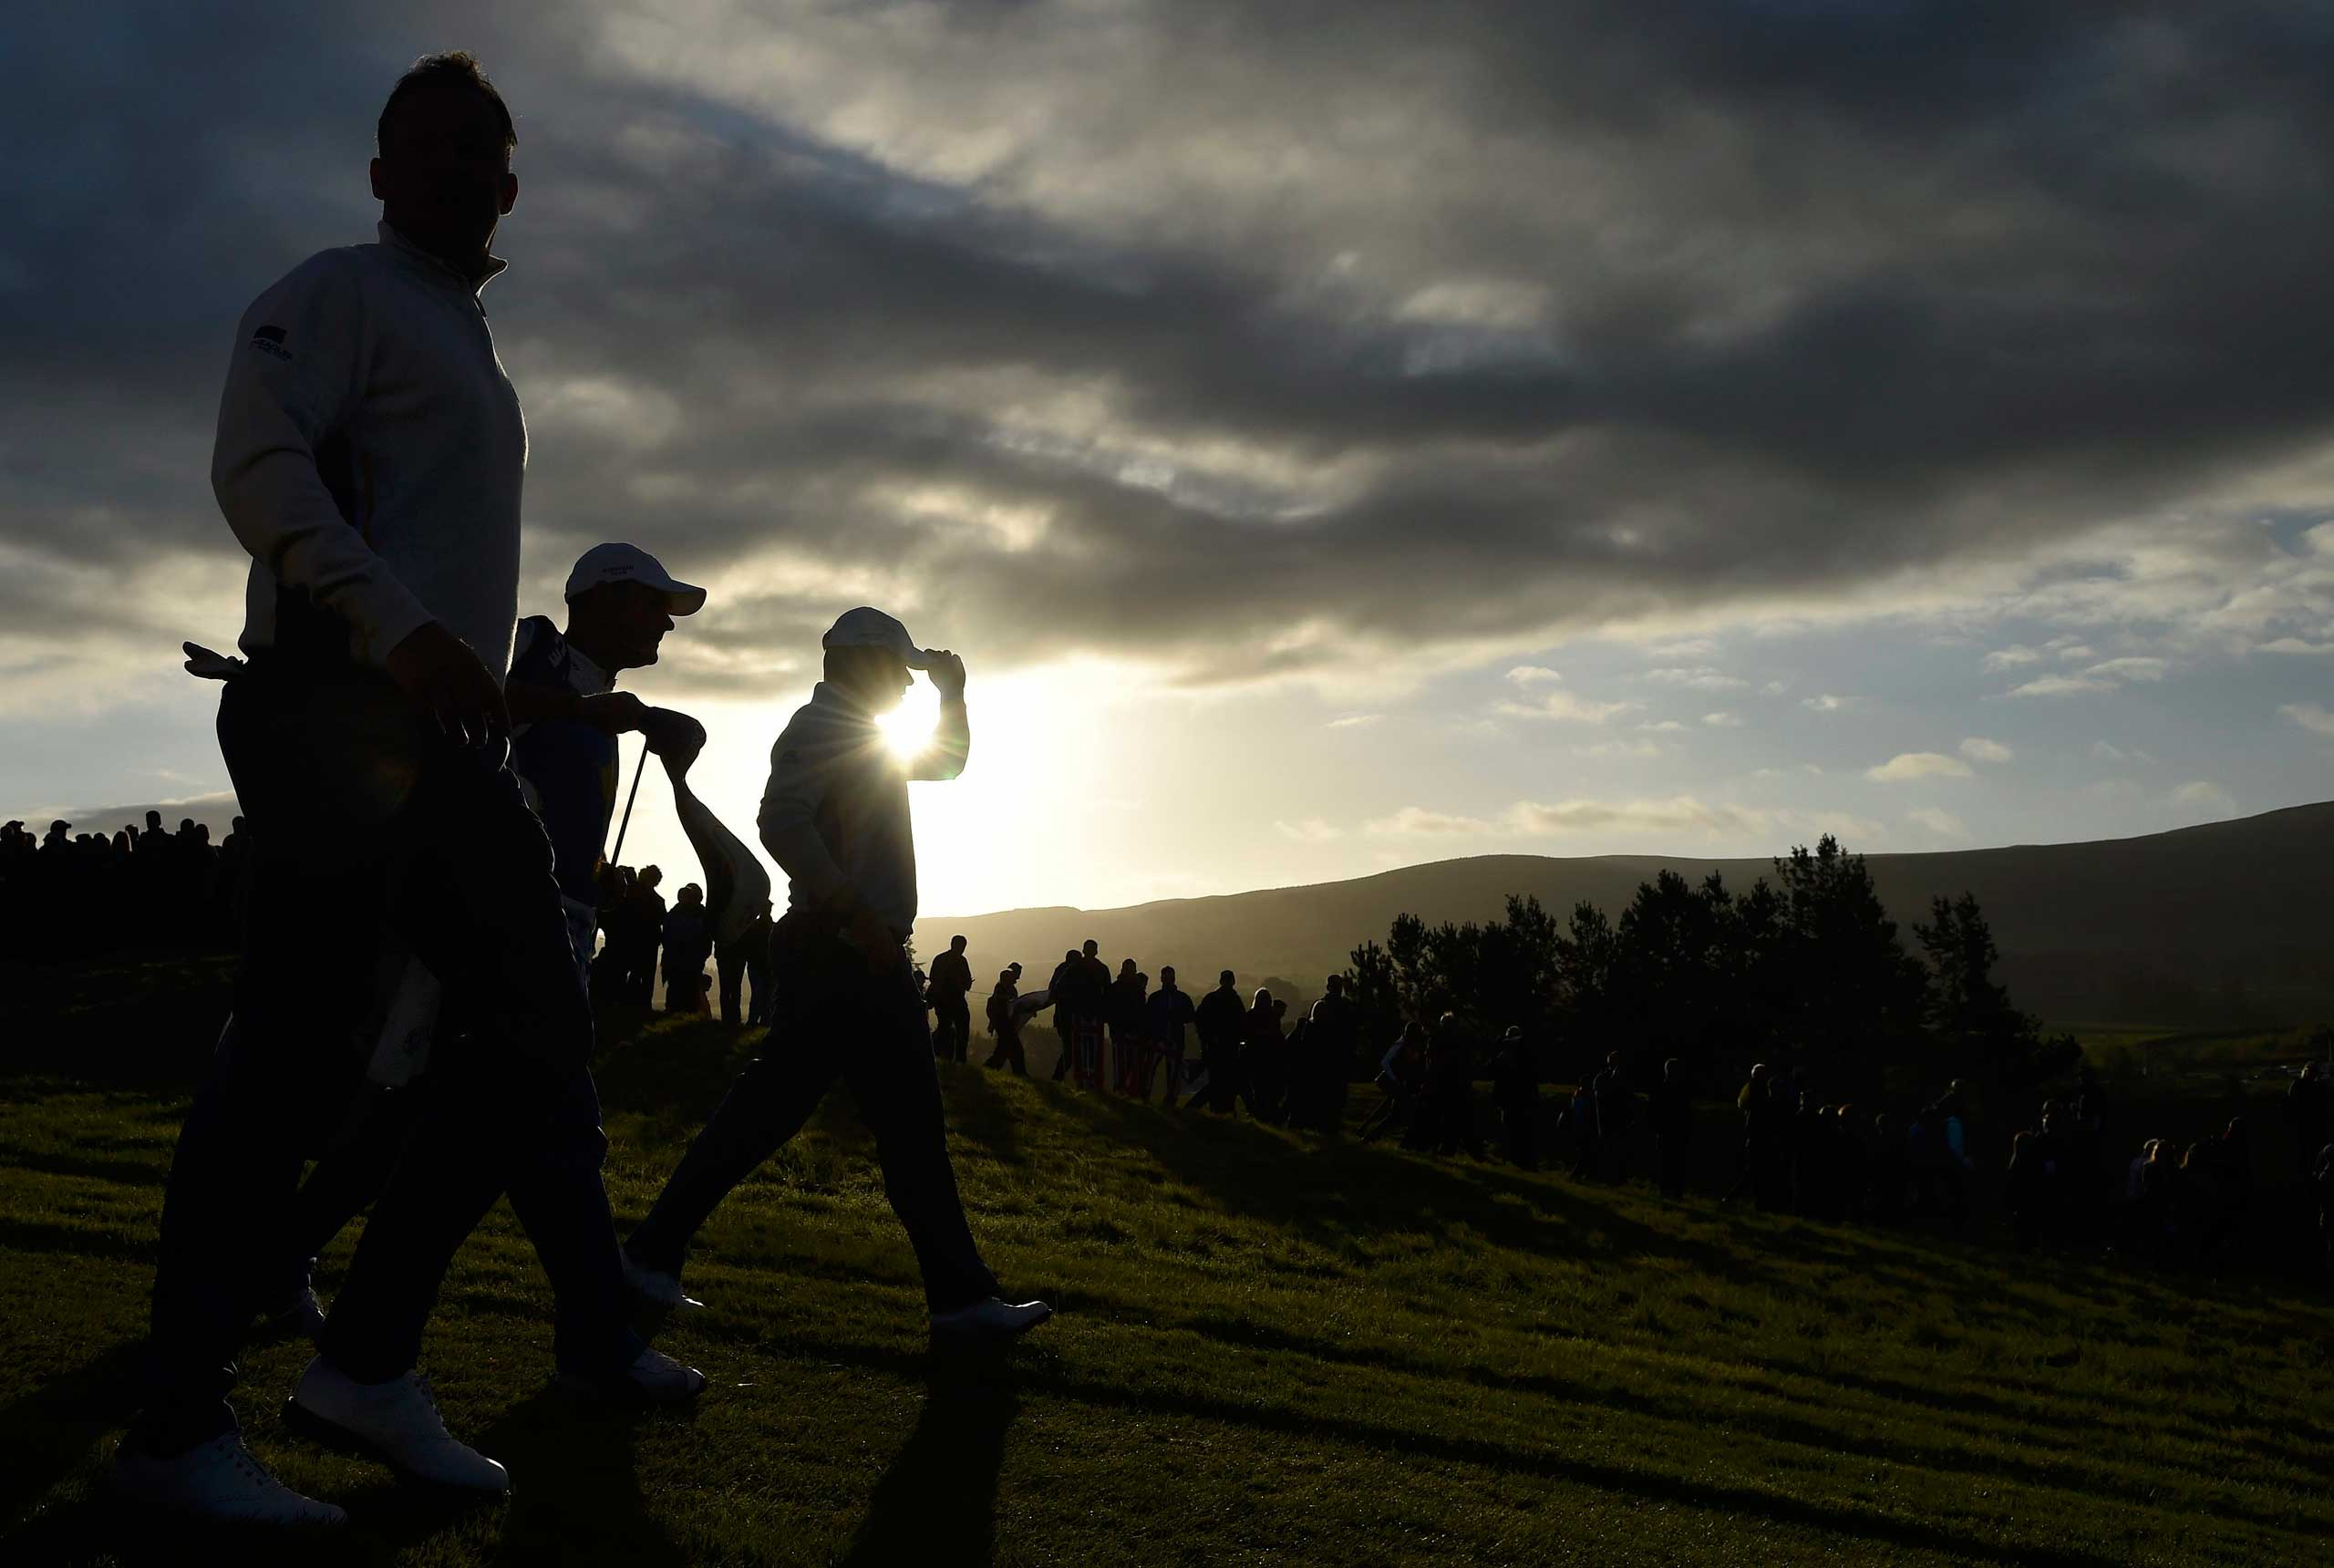 Sept. 27, 2014. European Ryder Cup players Jamie Donaldson (L) and Lee Westwood (R) walk along the second fairway during their fourballs 40th Ryder Cup match at Gleneagles in Scotland.